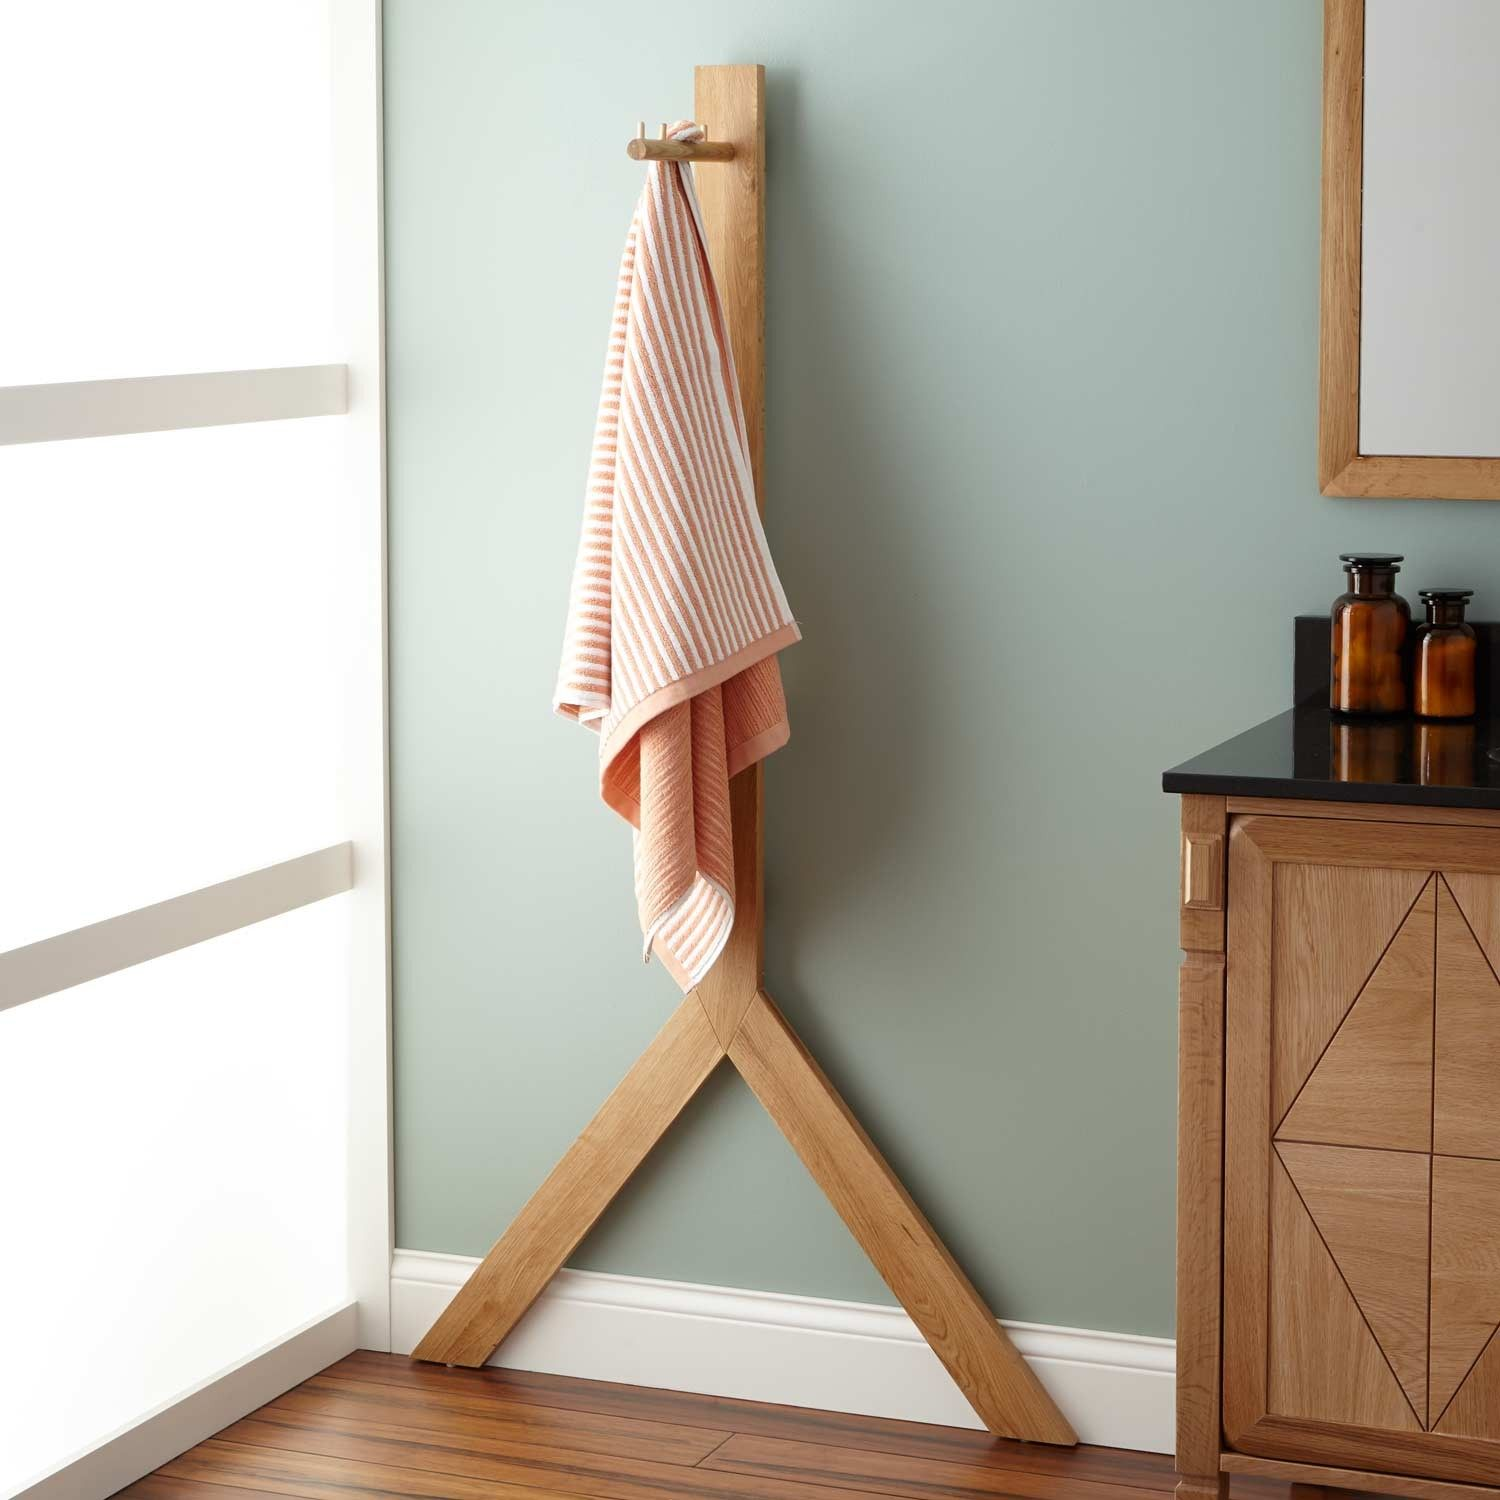 ideas storage very using wall rattan creative rack metal for or furniture box old hooks mounted small bathroom towel